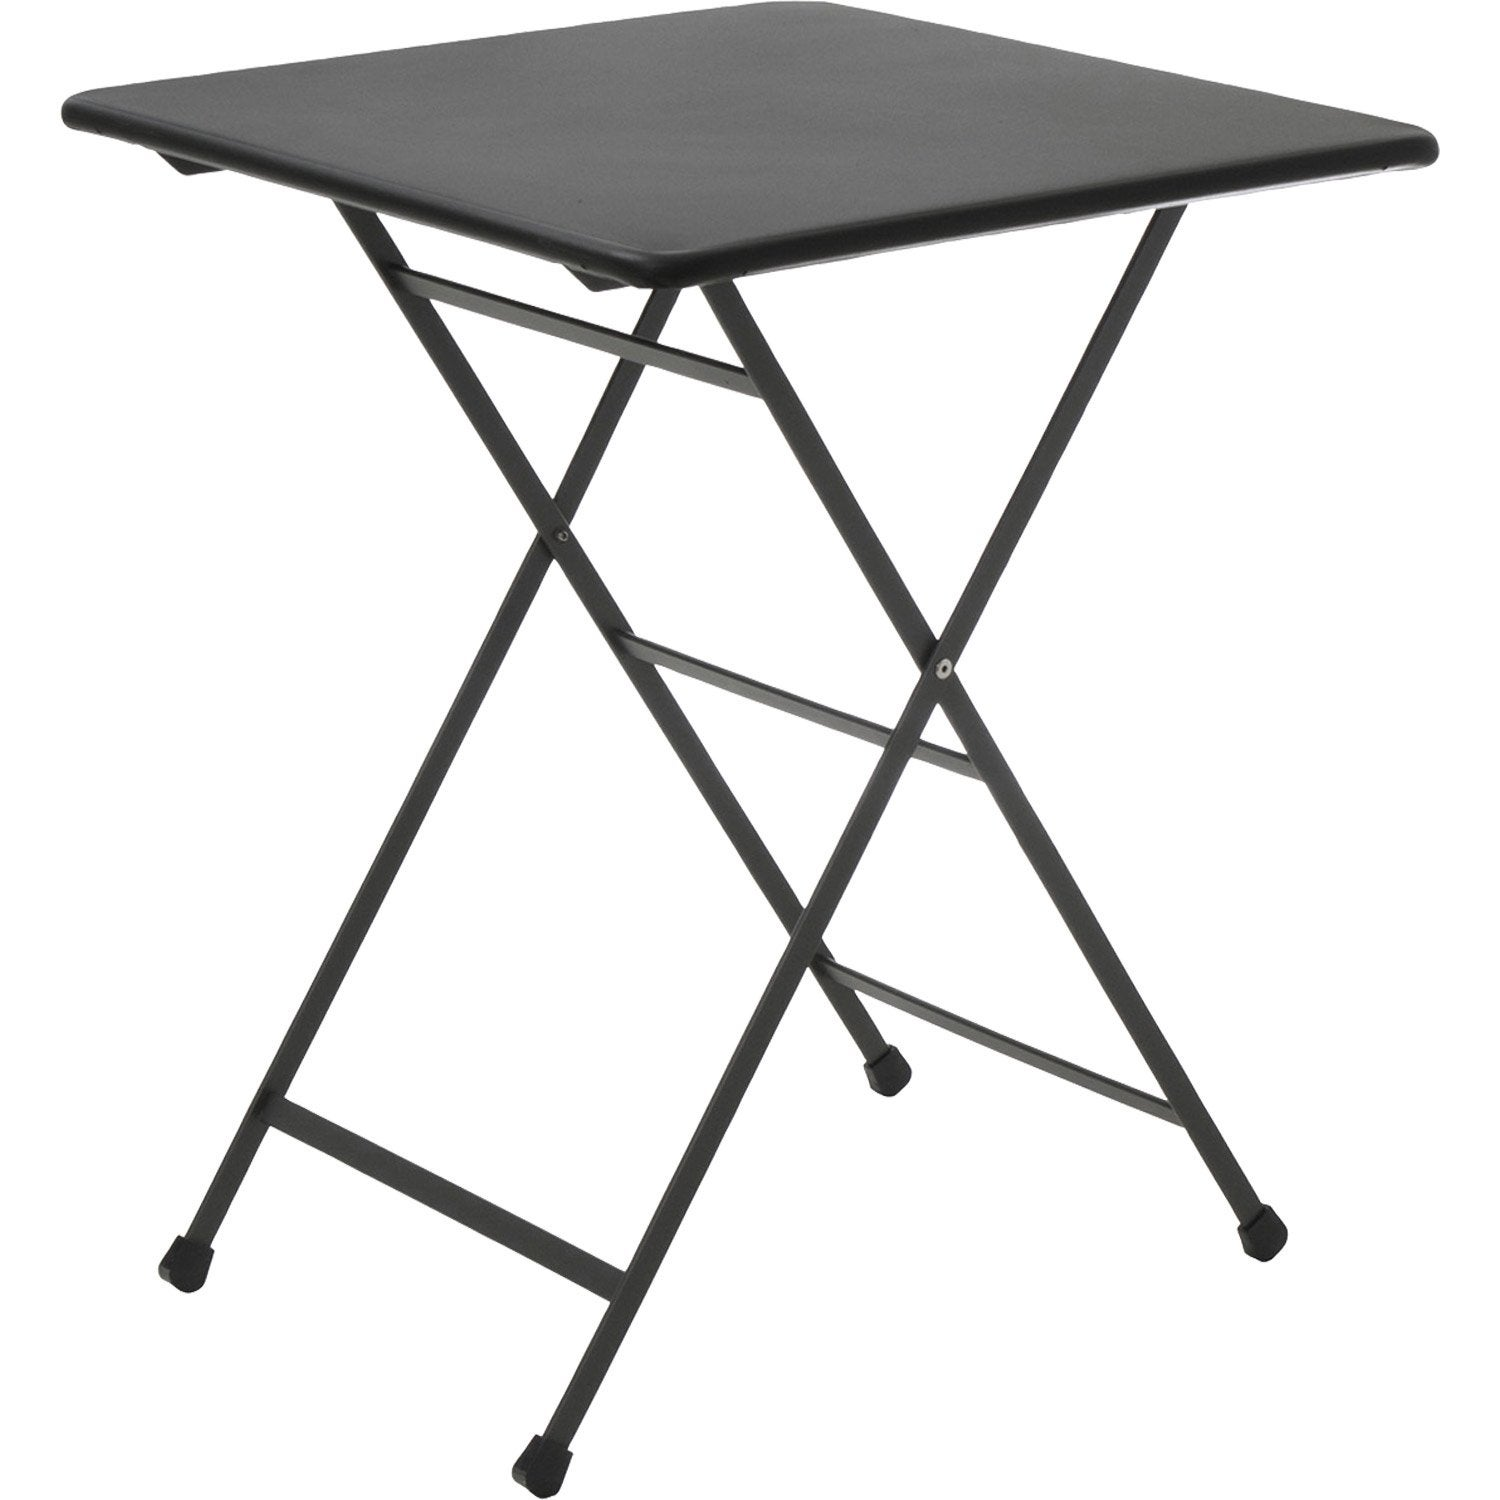 Table de jardin rainbow carr e gris 2 personnes leroy merlin for Leroy merlin table jardin